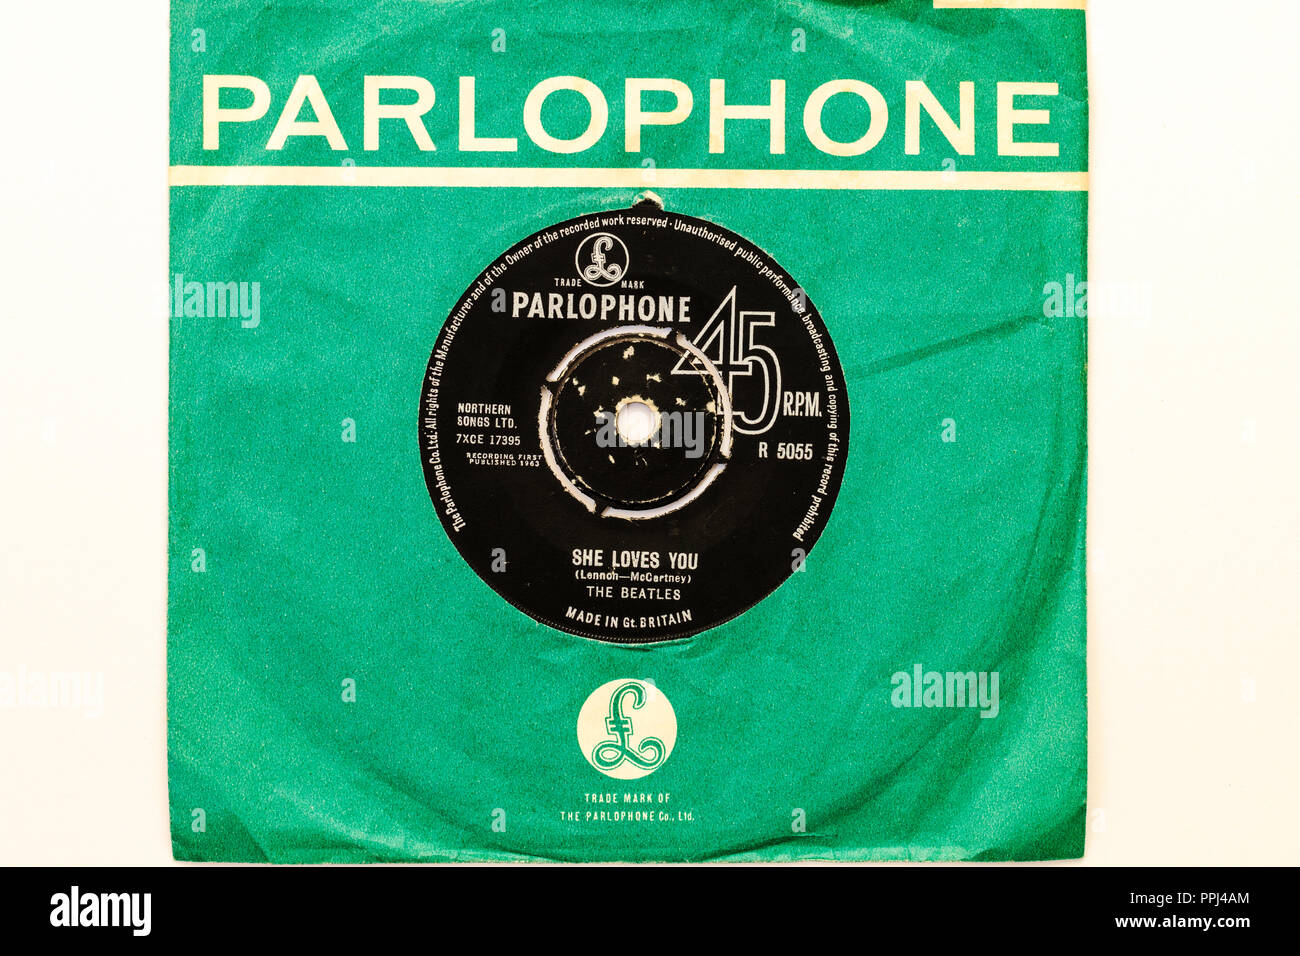 45 single track record in Parlophone green cover. The Beatles, 'She loves You' by Lennon and McCartney. 1963 R5055 Stock Photo